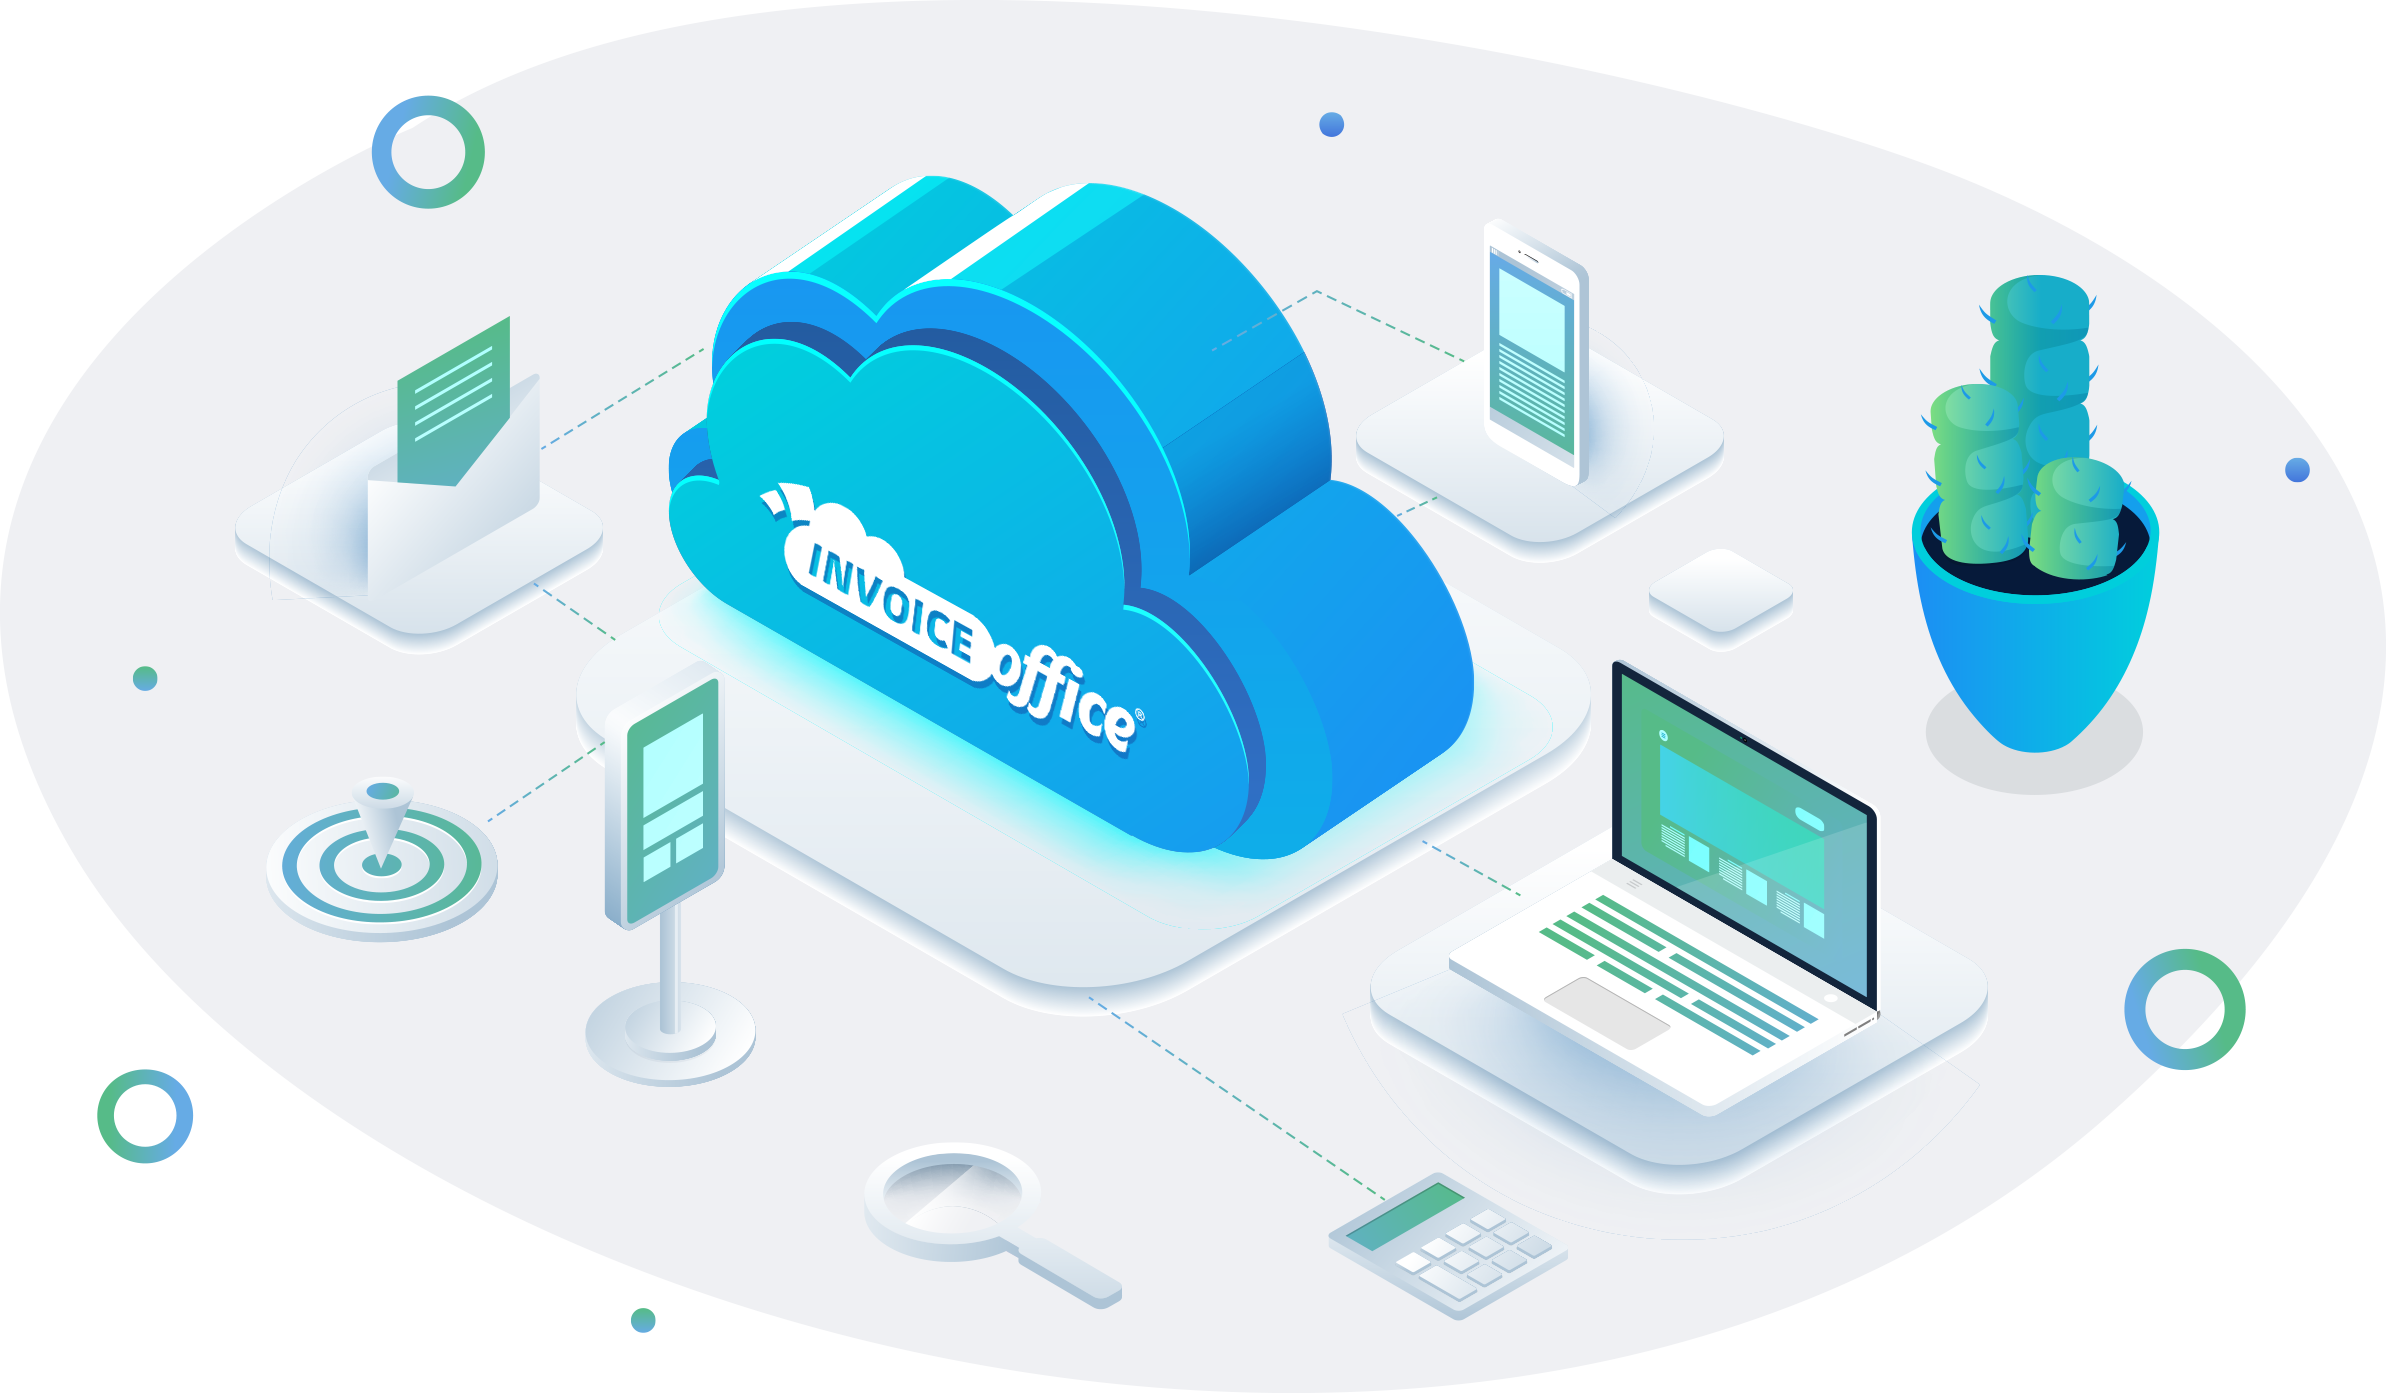 Invoice Office online billing in the cloud